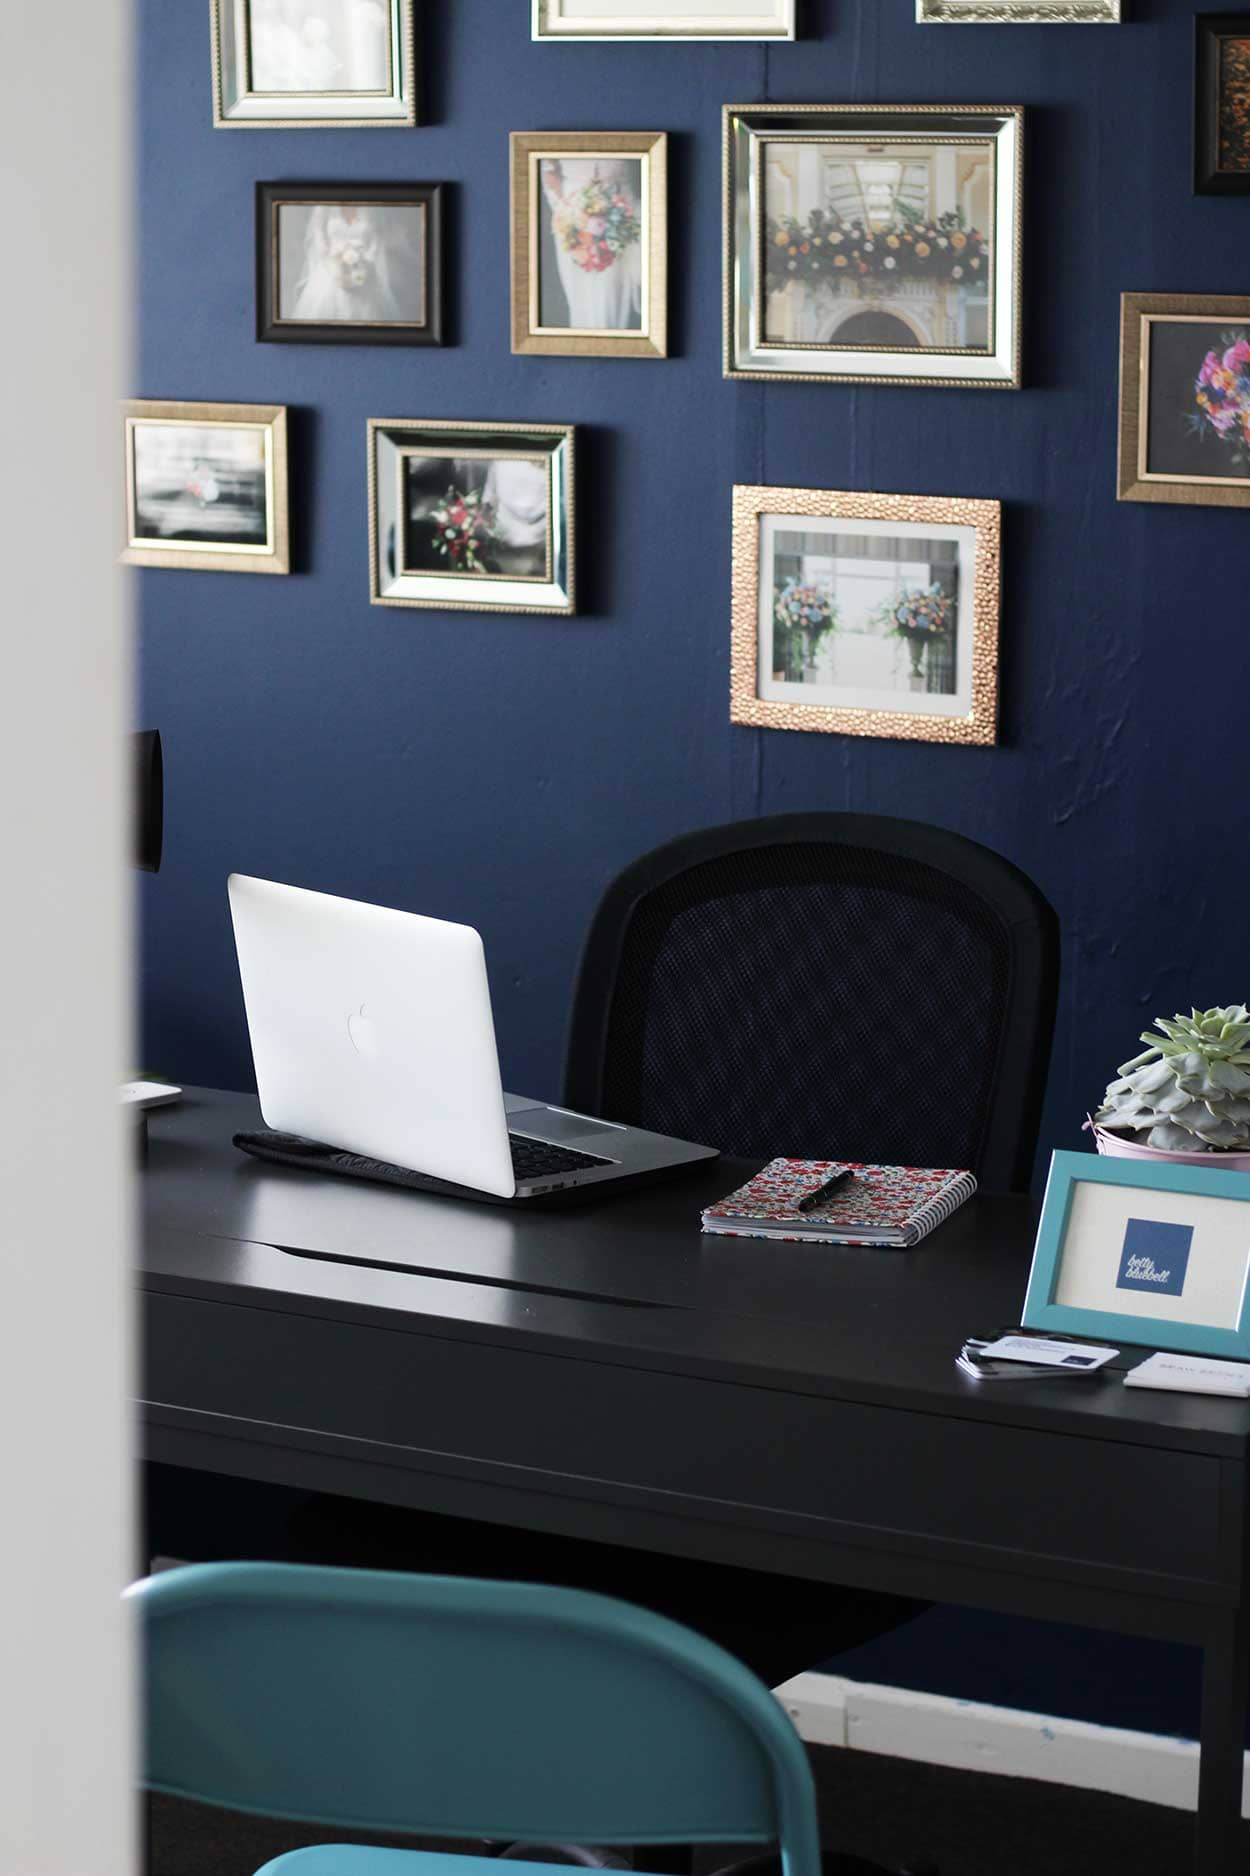 Successful Business Betty Bluebell - Emma's work space at Storage Vault Cambuslang.